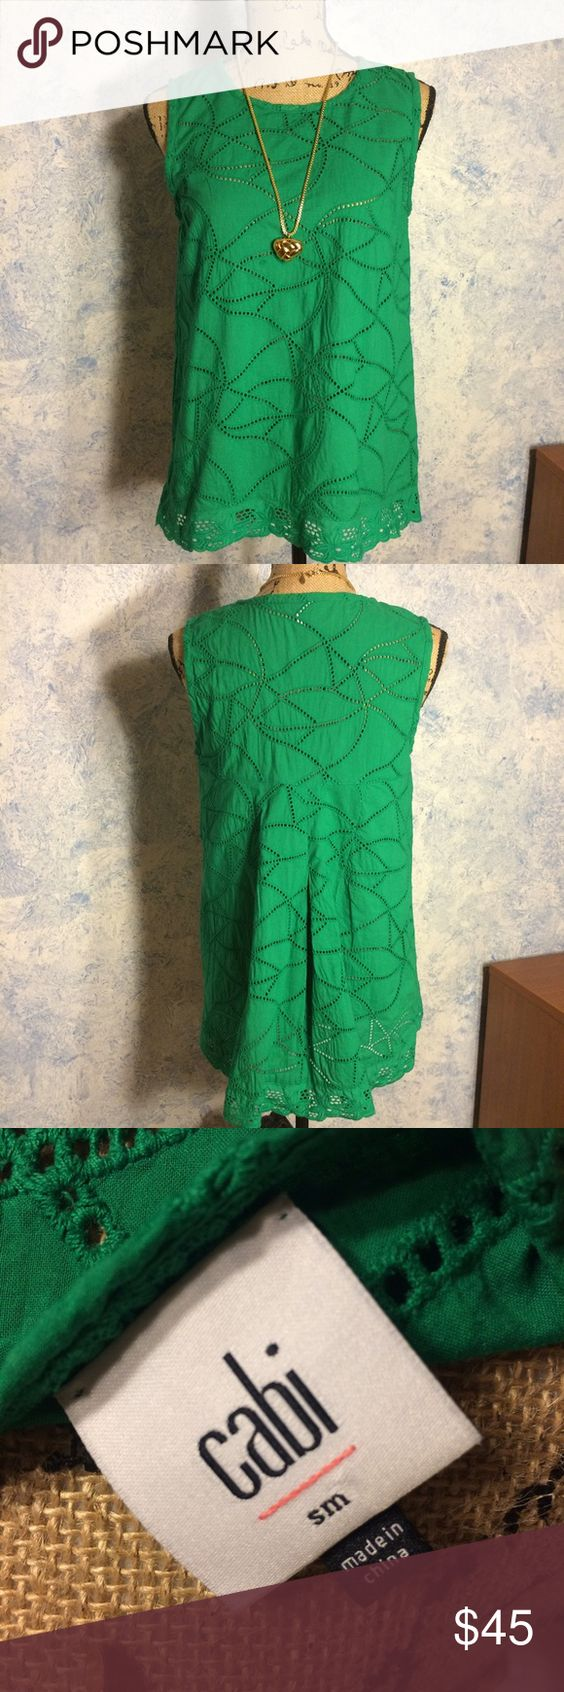 🎈New item🎈Cabi Gemma top VGUC Jelly bean green Gemma top. Spring 2016. There is a very very very slight fading on the top of the color area in front. I tried to zoom in on it but it's so faint hardly shows up in picture but I did want to mention. Machine washed and laid flat to dry. Eyelet design, form fitting at chest and eases into a swing shape. 100% cotton. CAbi Tops Tank Tops